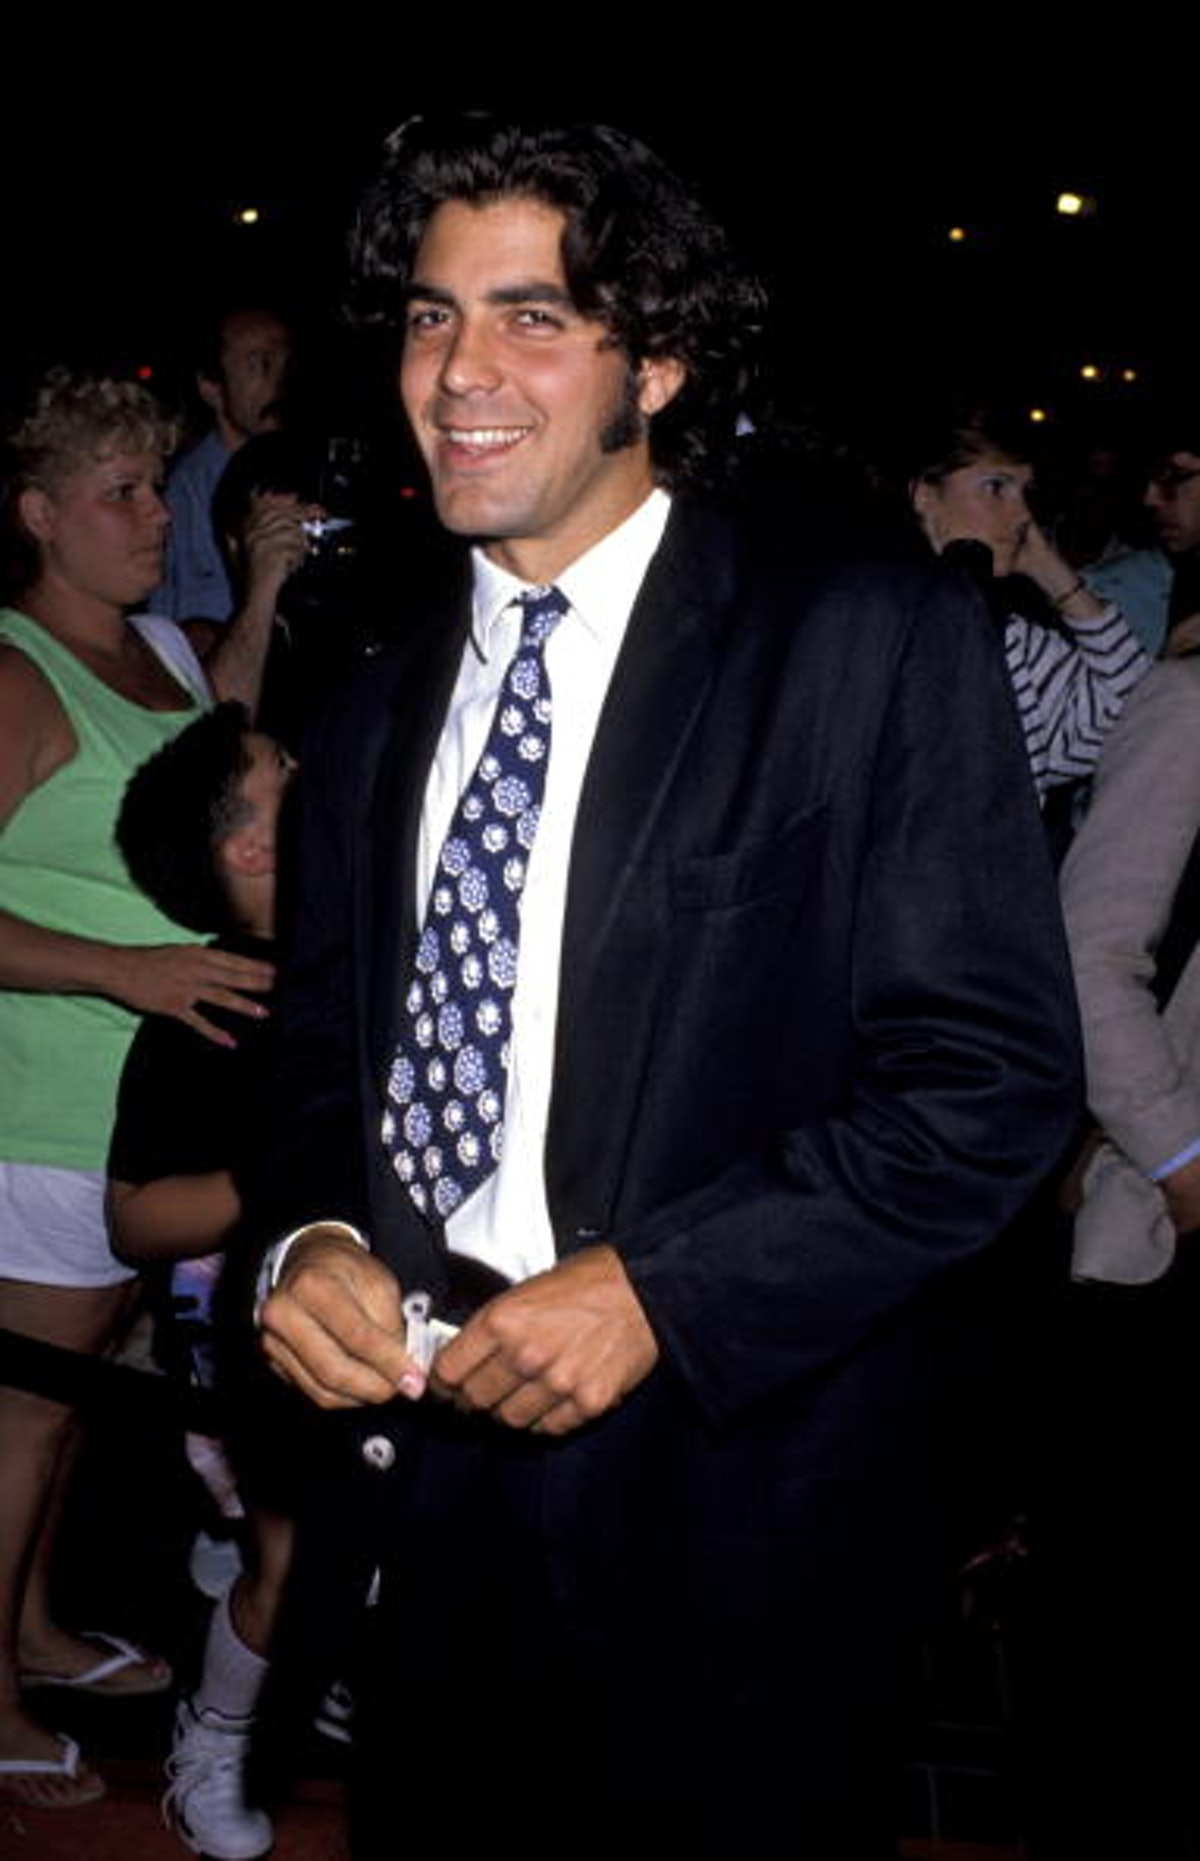 George Clooney in a multicolored tie with long hair